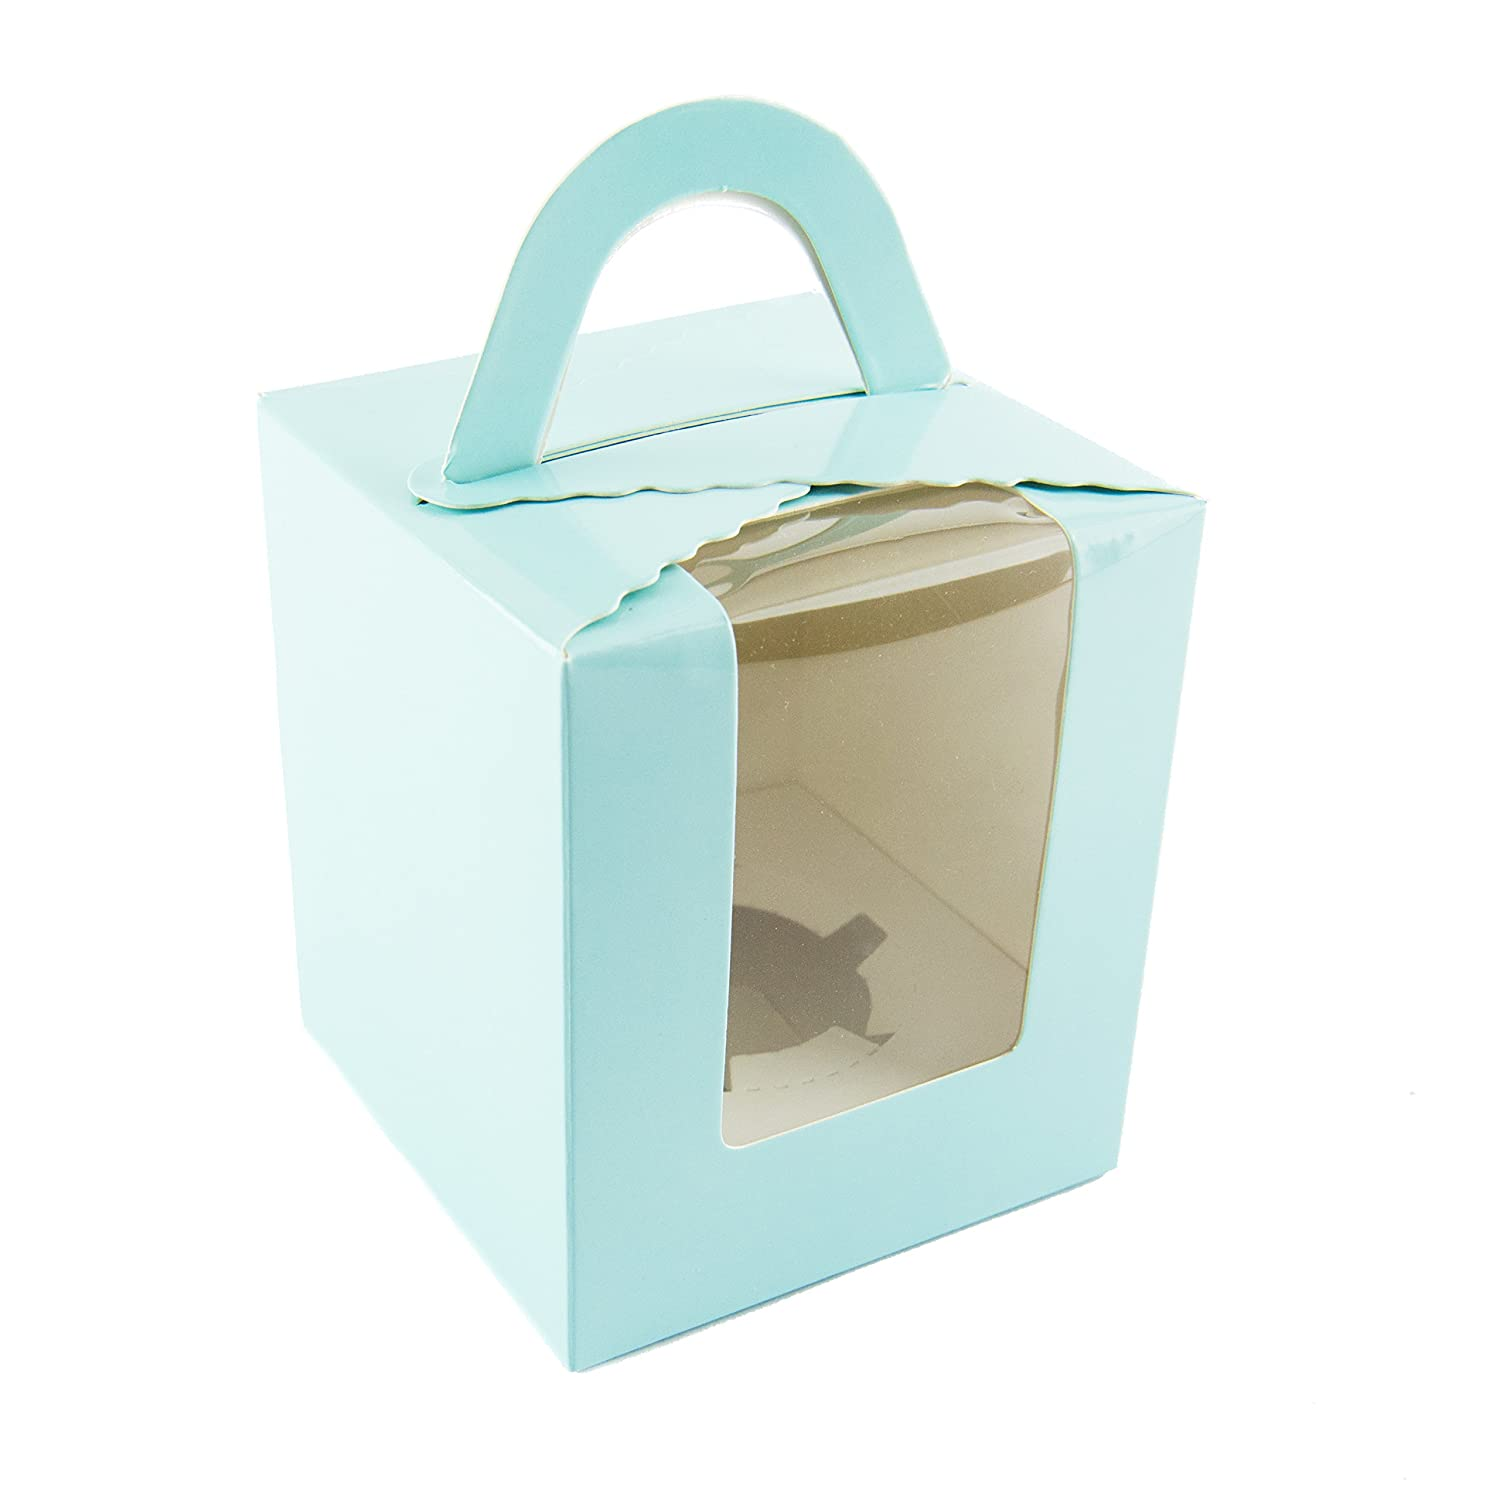 10 x Single Cupcake Boxes in Blue Ibex Retail